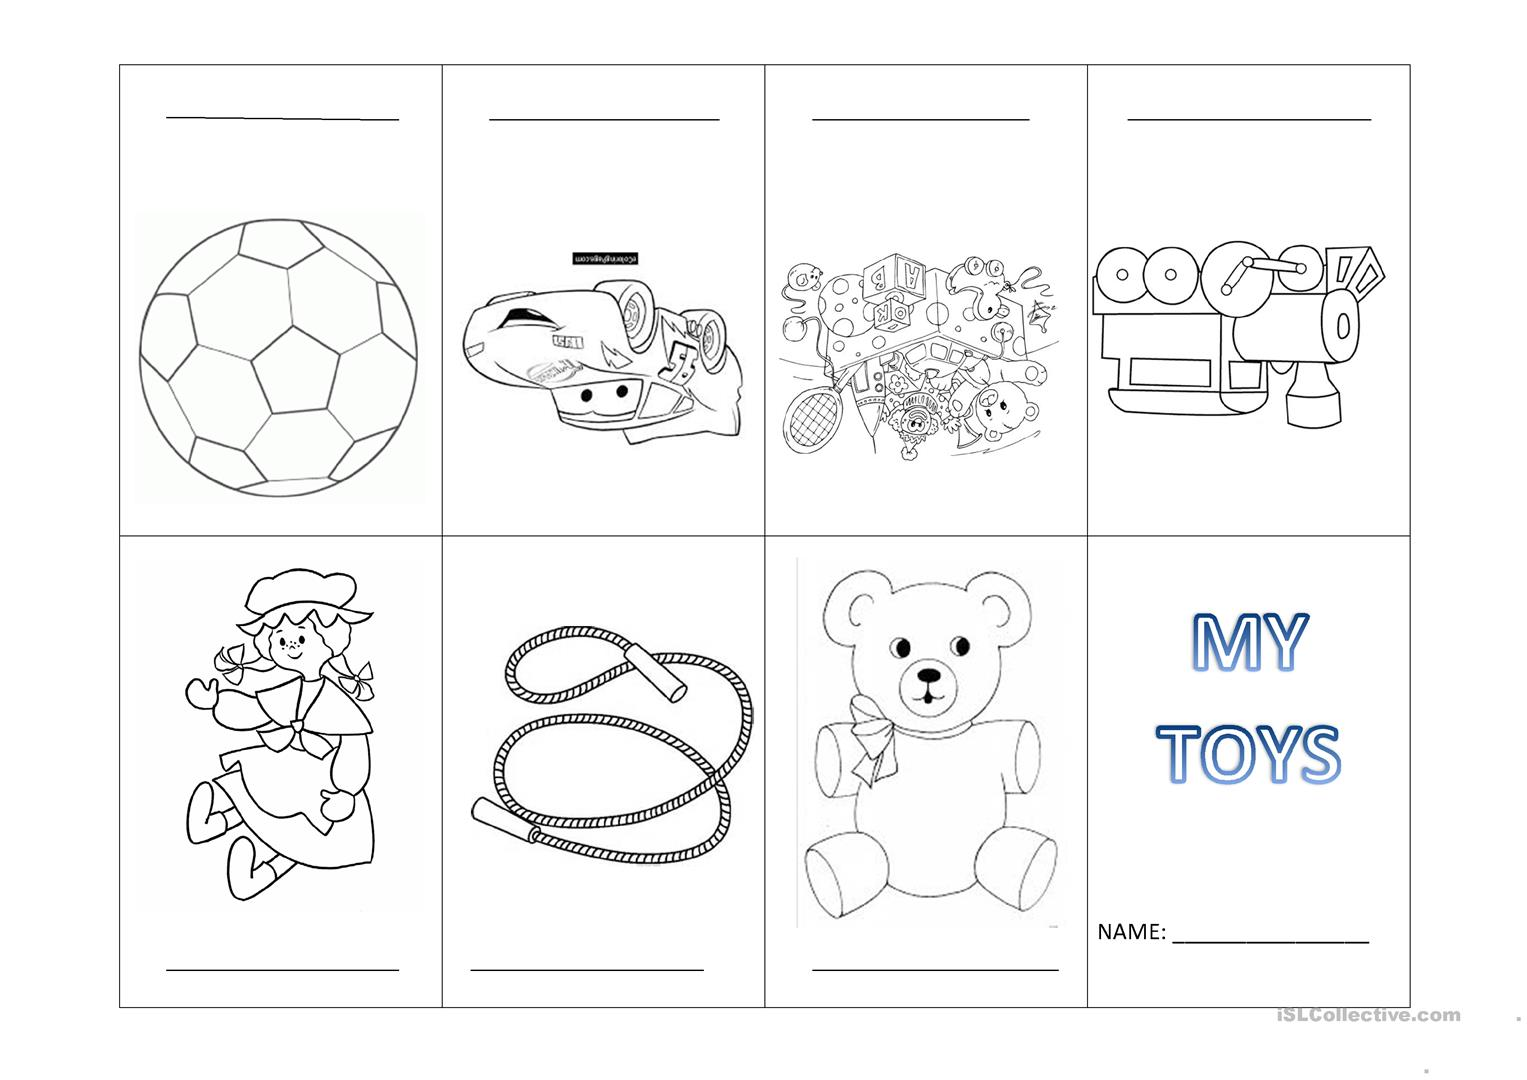 My Toys Mini Book Worksheet